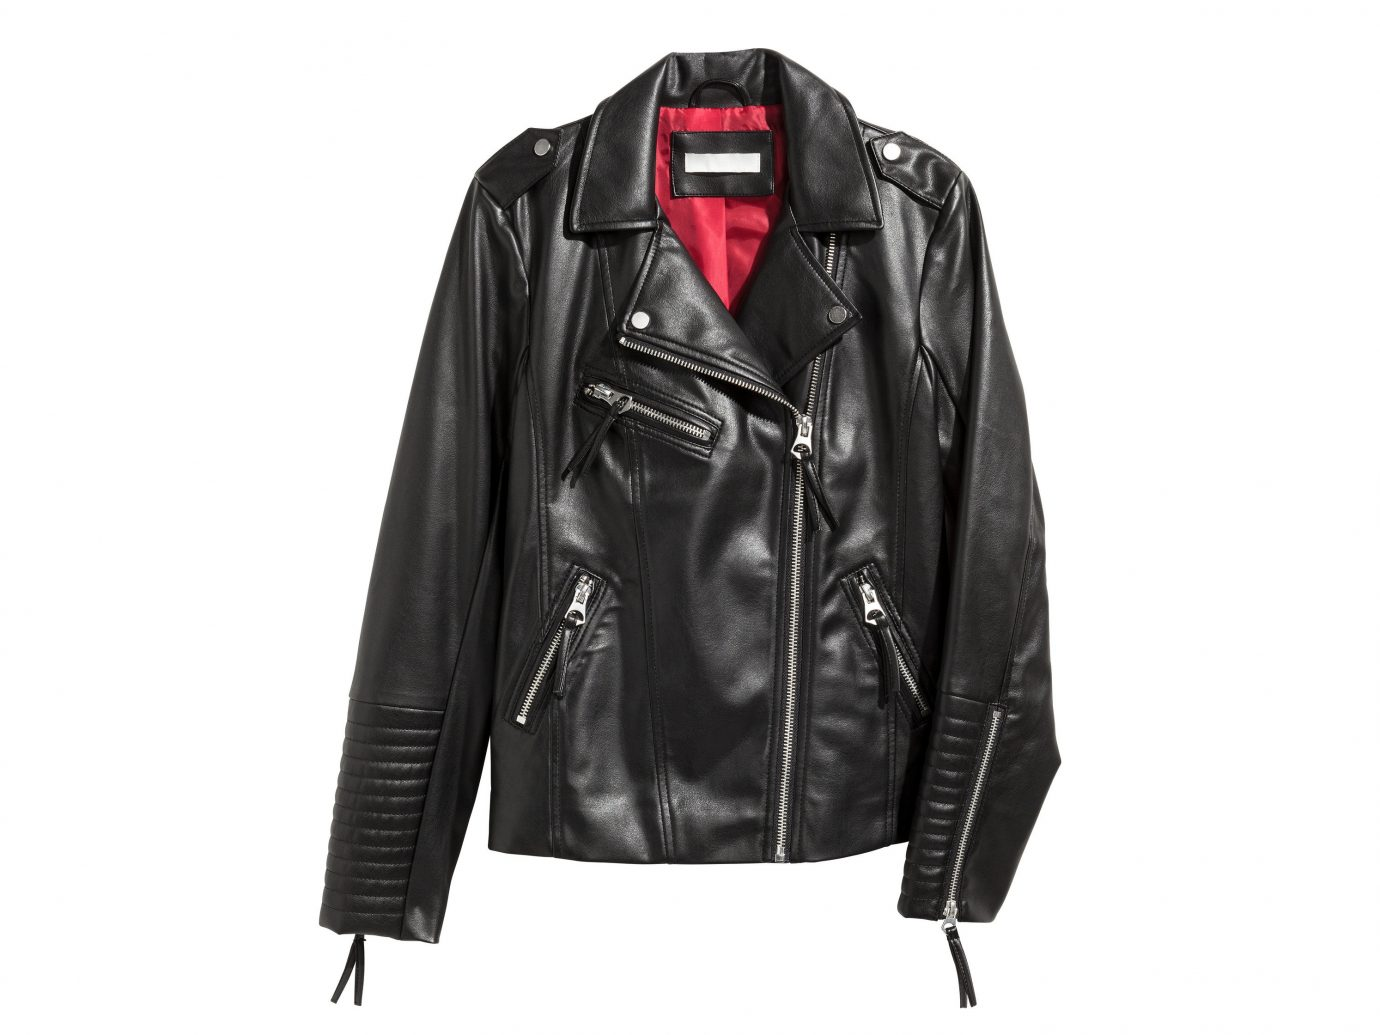 Style + Design jacket clothing leather jacket leather textile material sleeve outerwear zipper coat